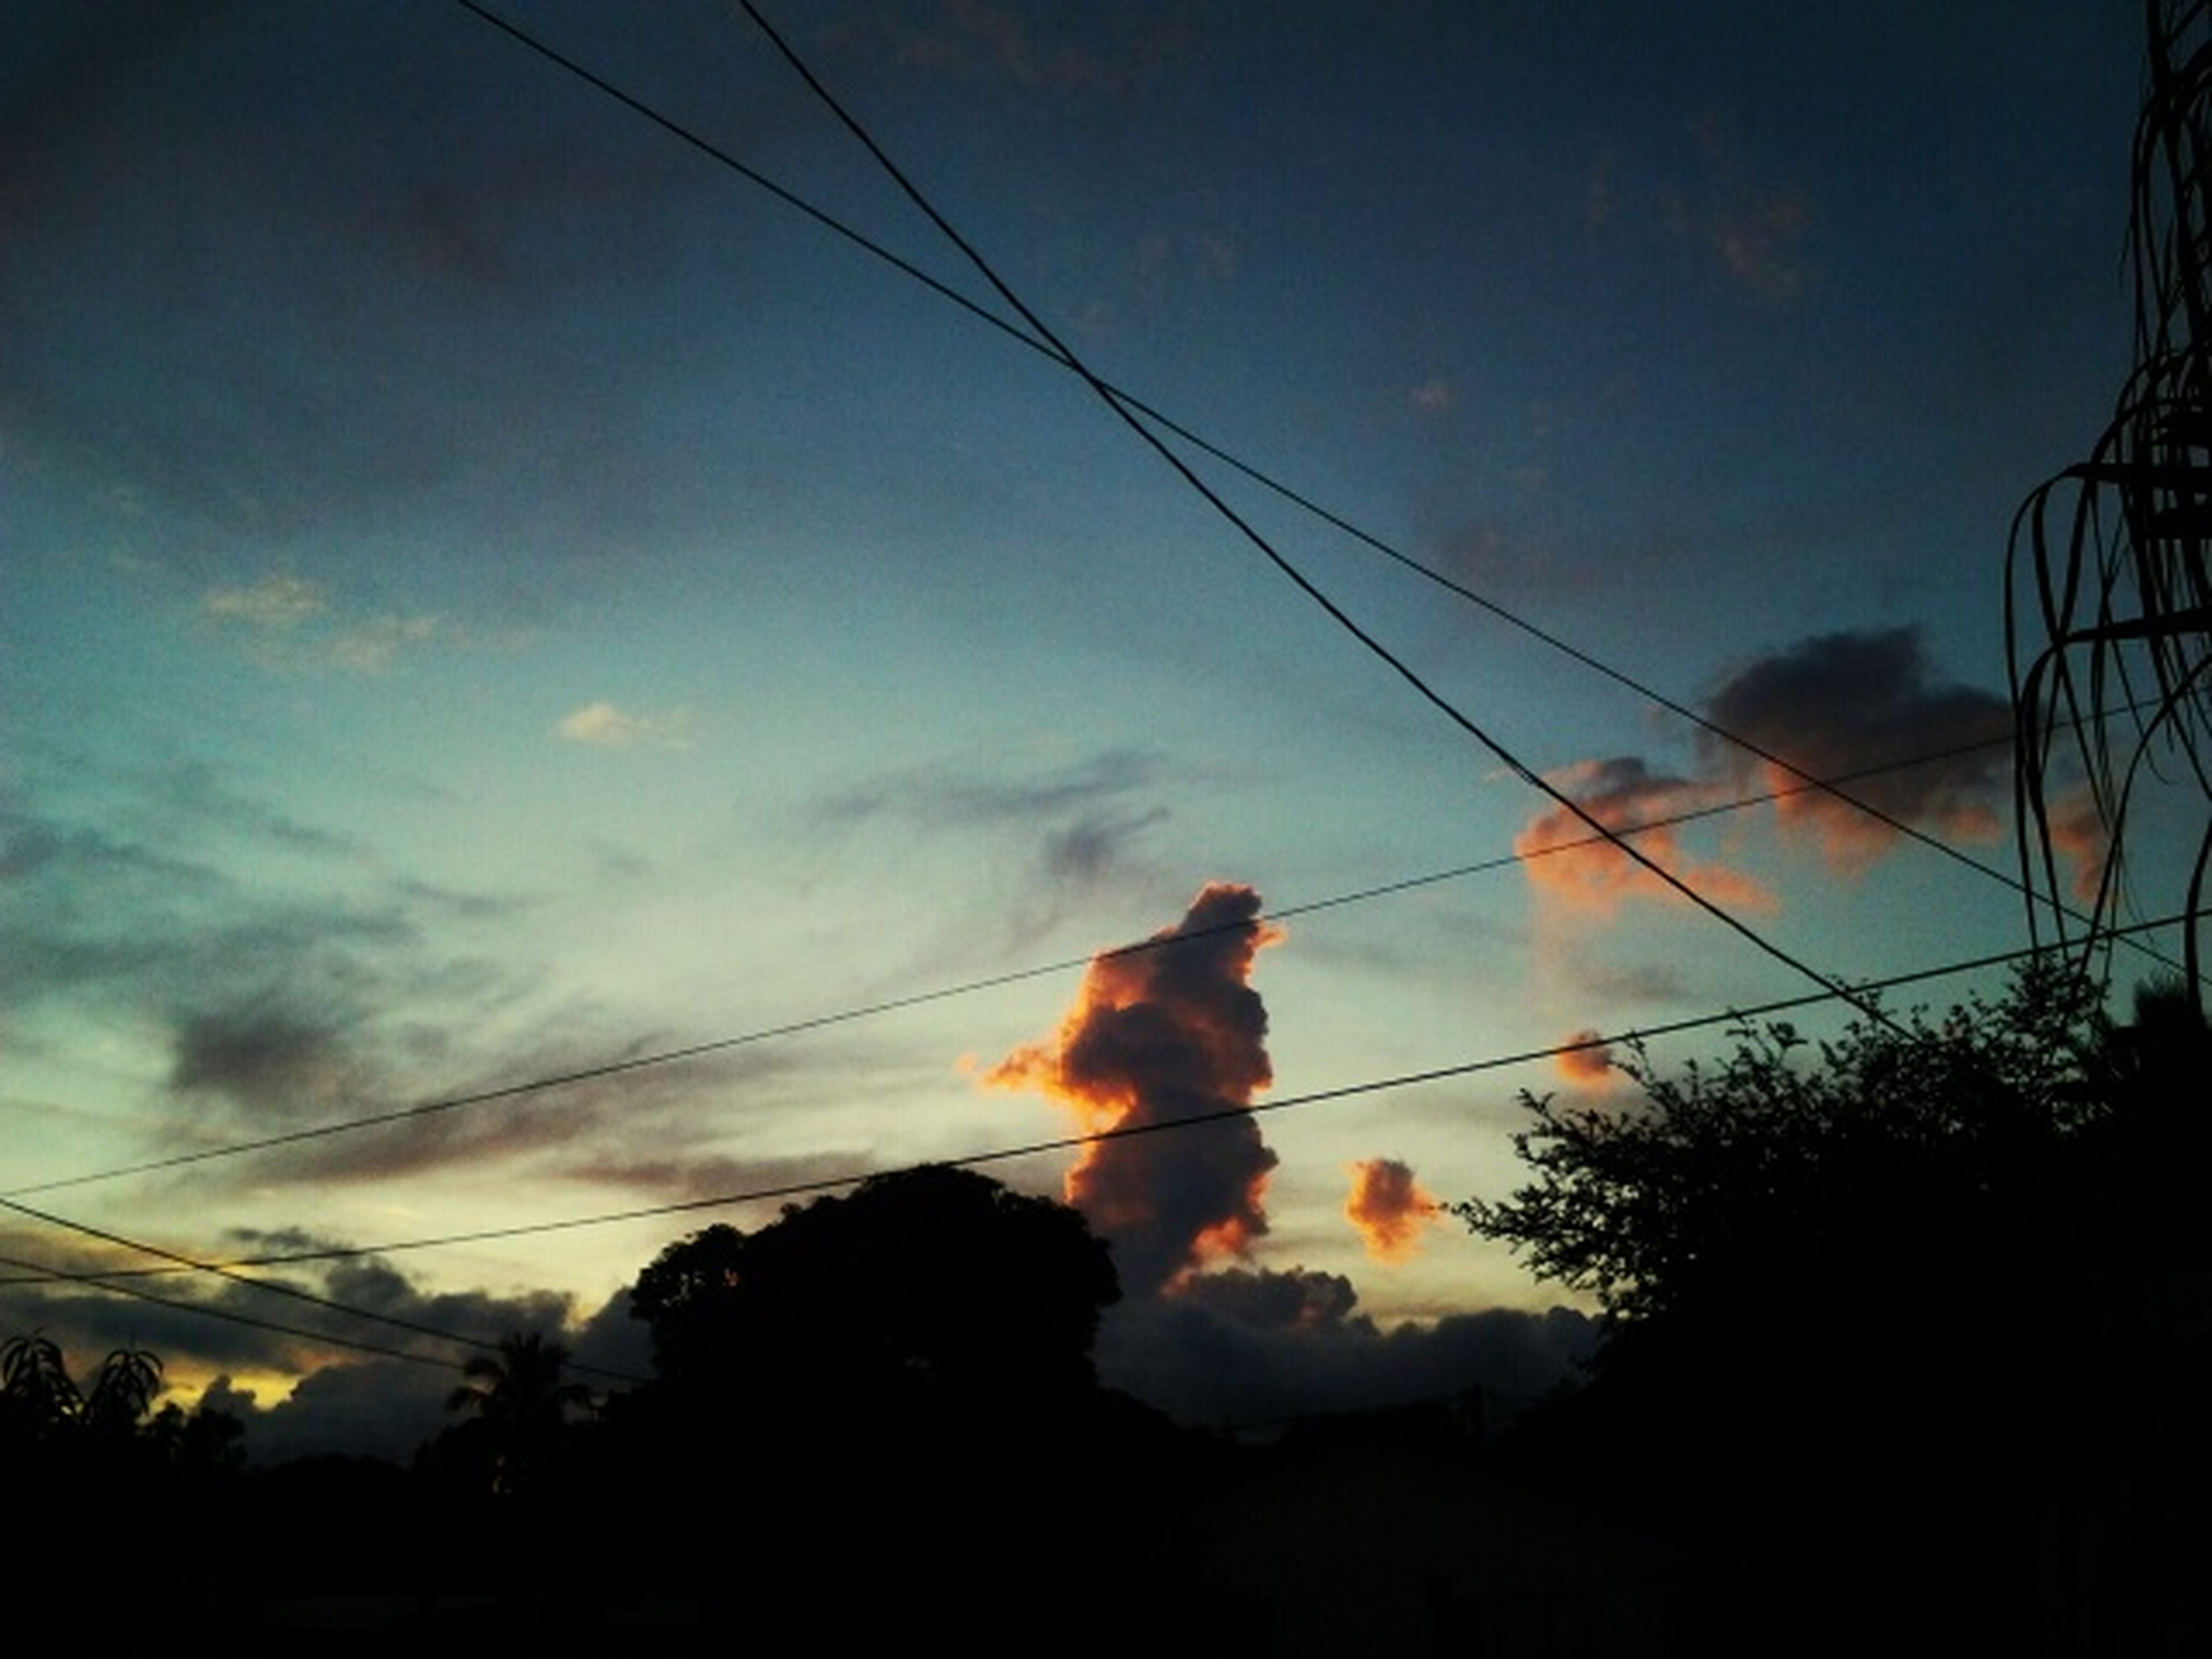 sky, power line, cloud - sky, low angle view, silhouette, sunset, electricity pylon, cable, cloud, tree, power supply, electricity, nature, dusk, beauty in nature, cloudy, no people, outdoors, tranquility, scenics